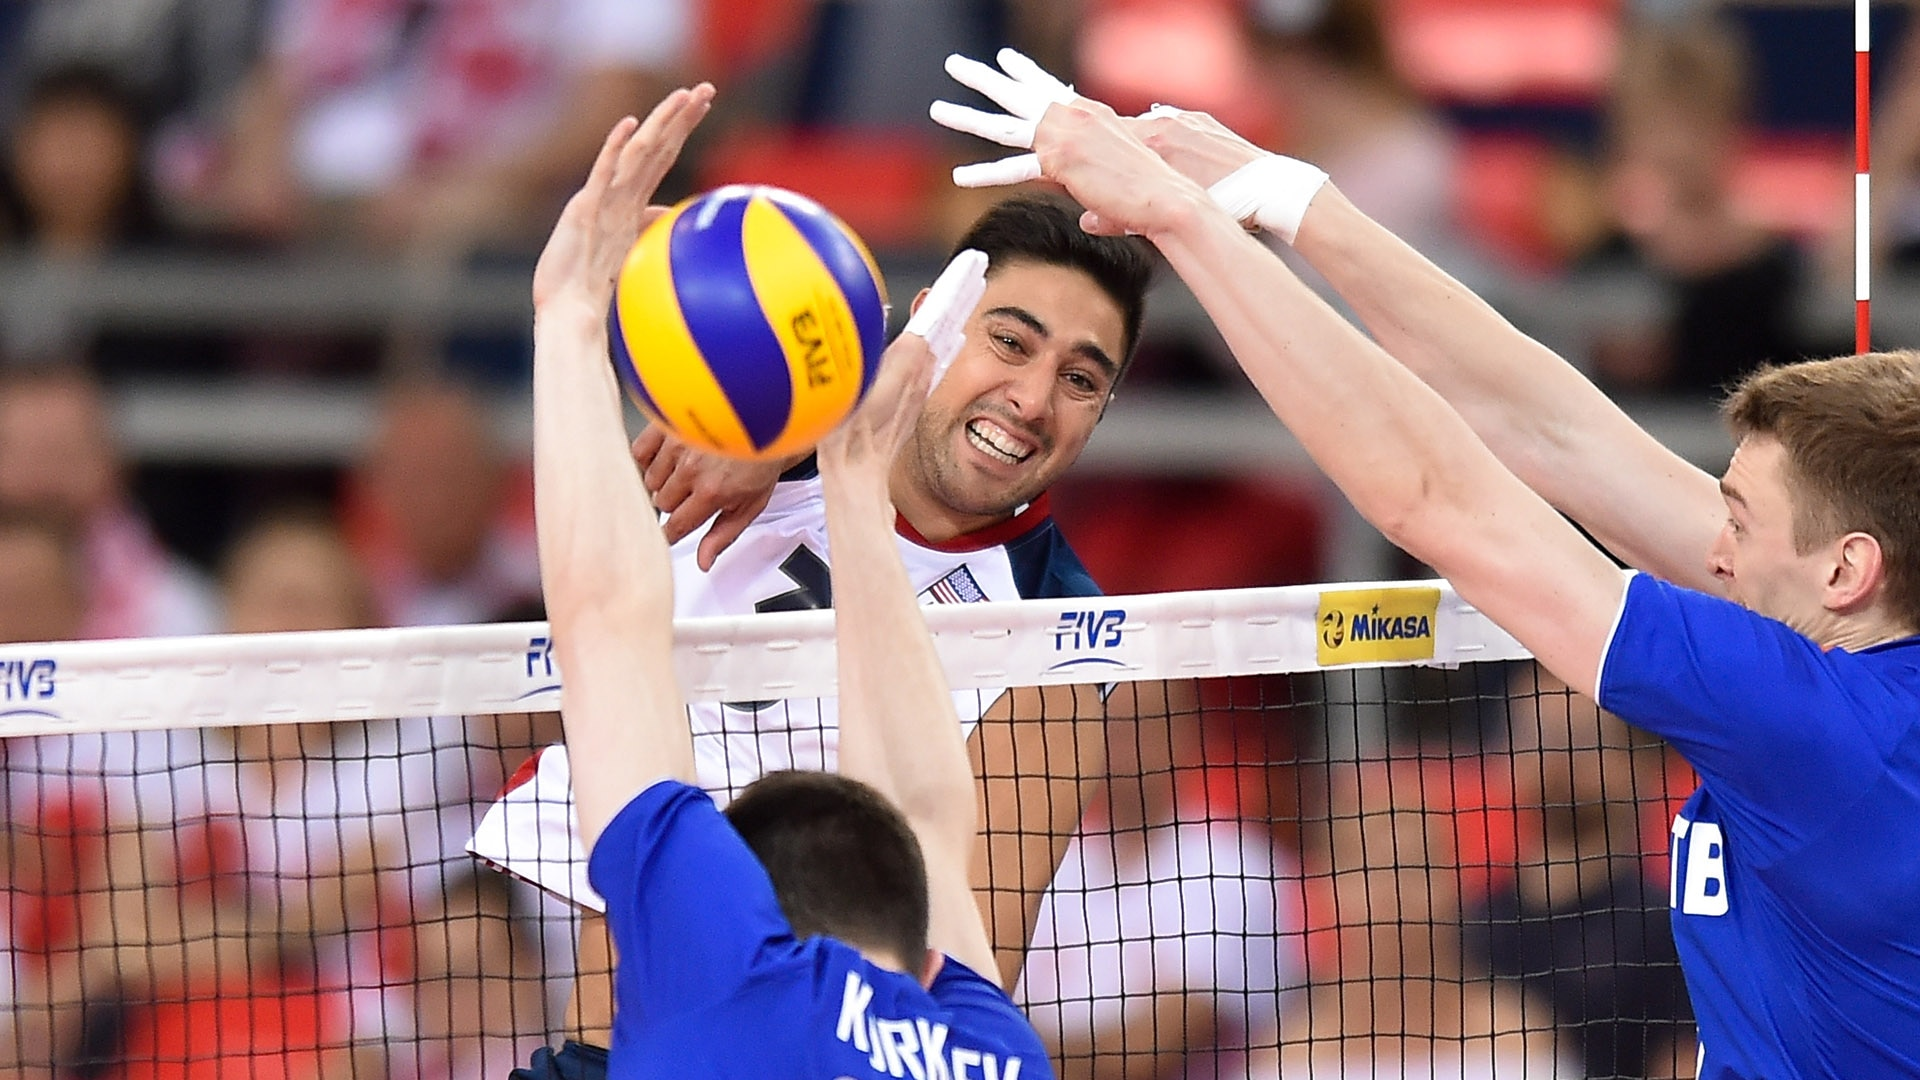 Taylor Sander in a 2017 World League game